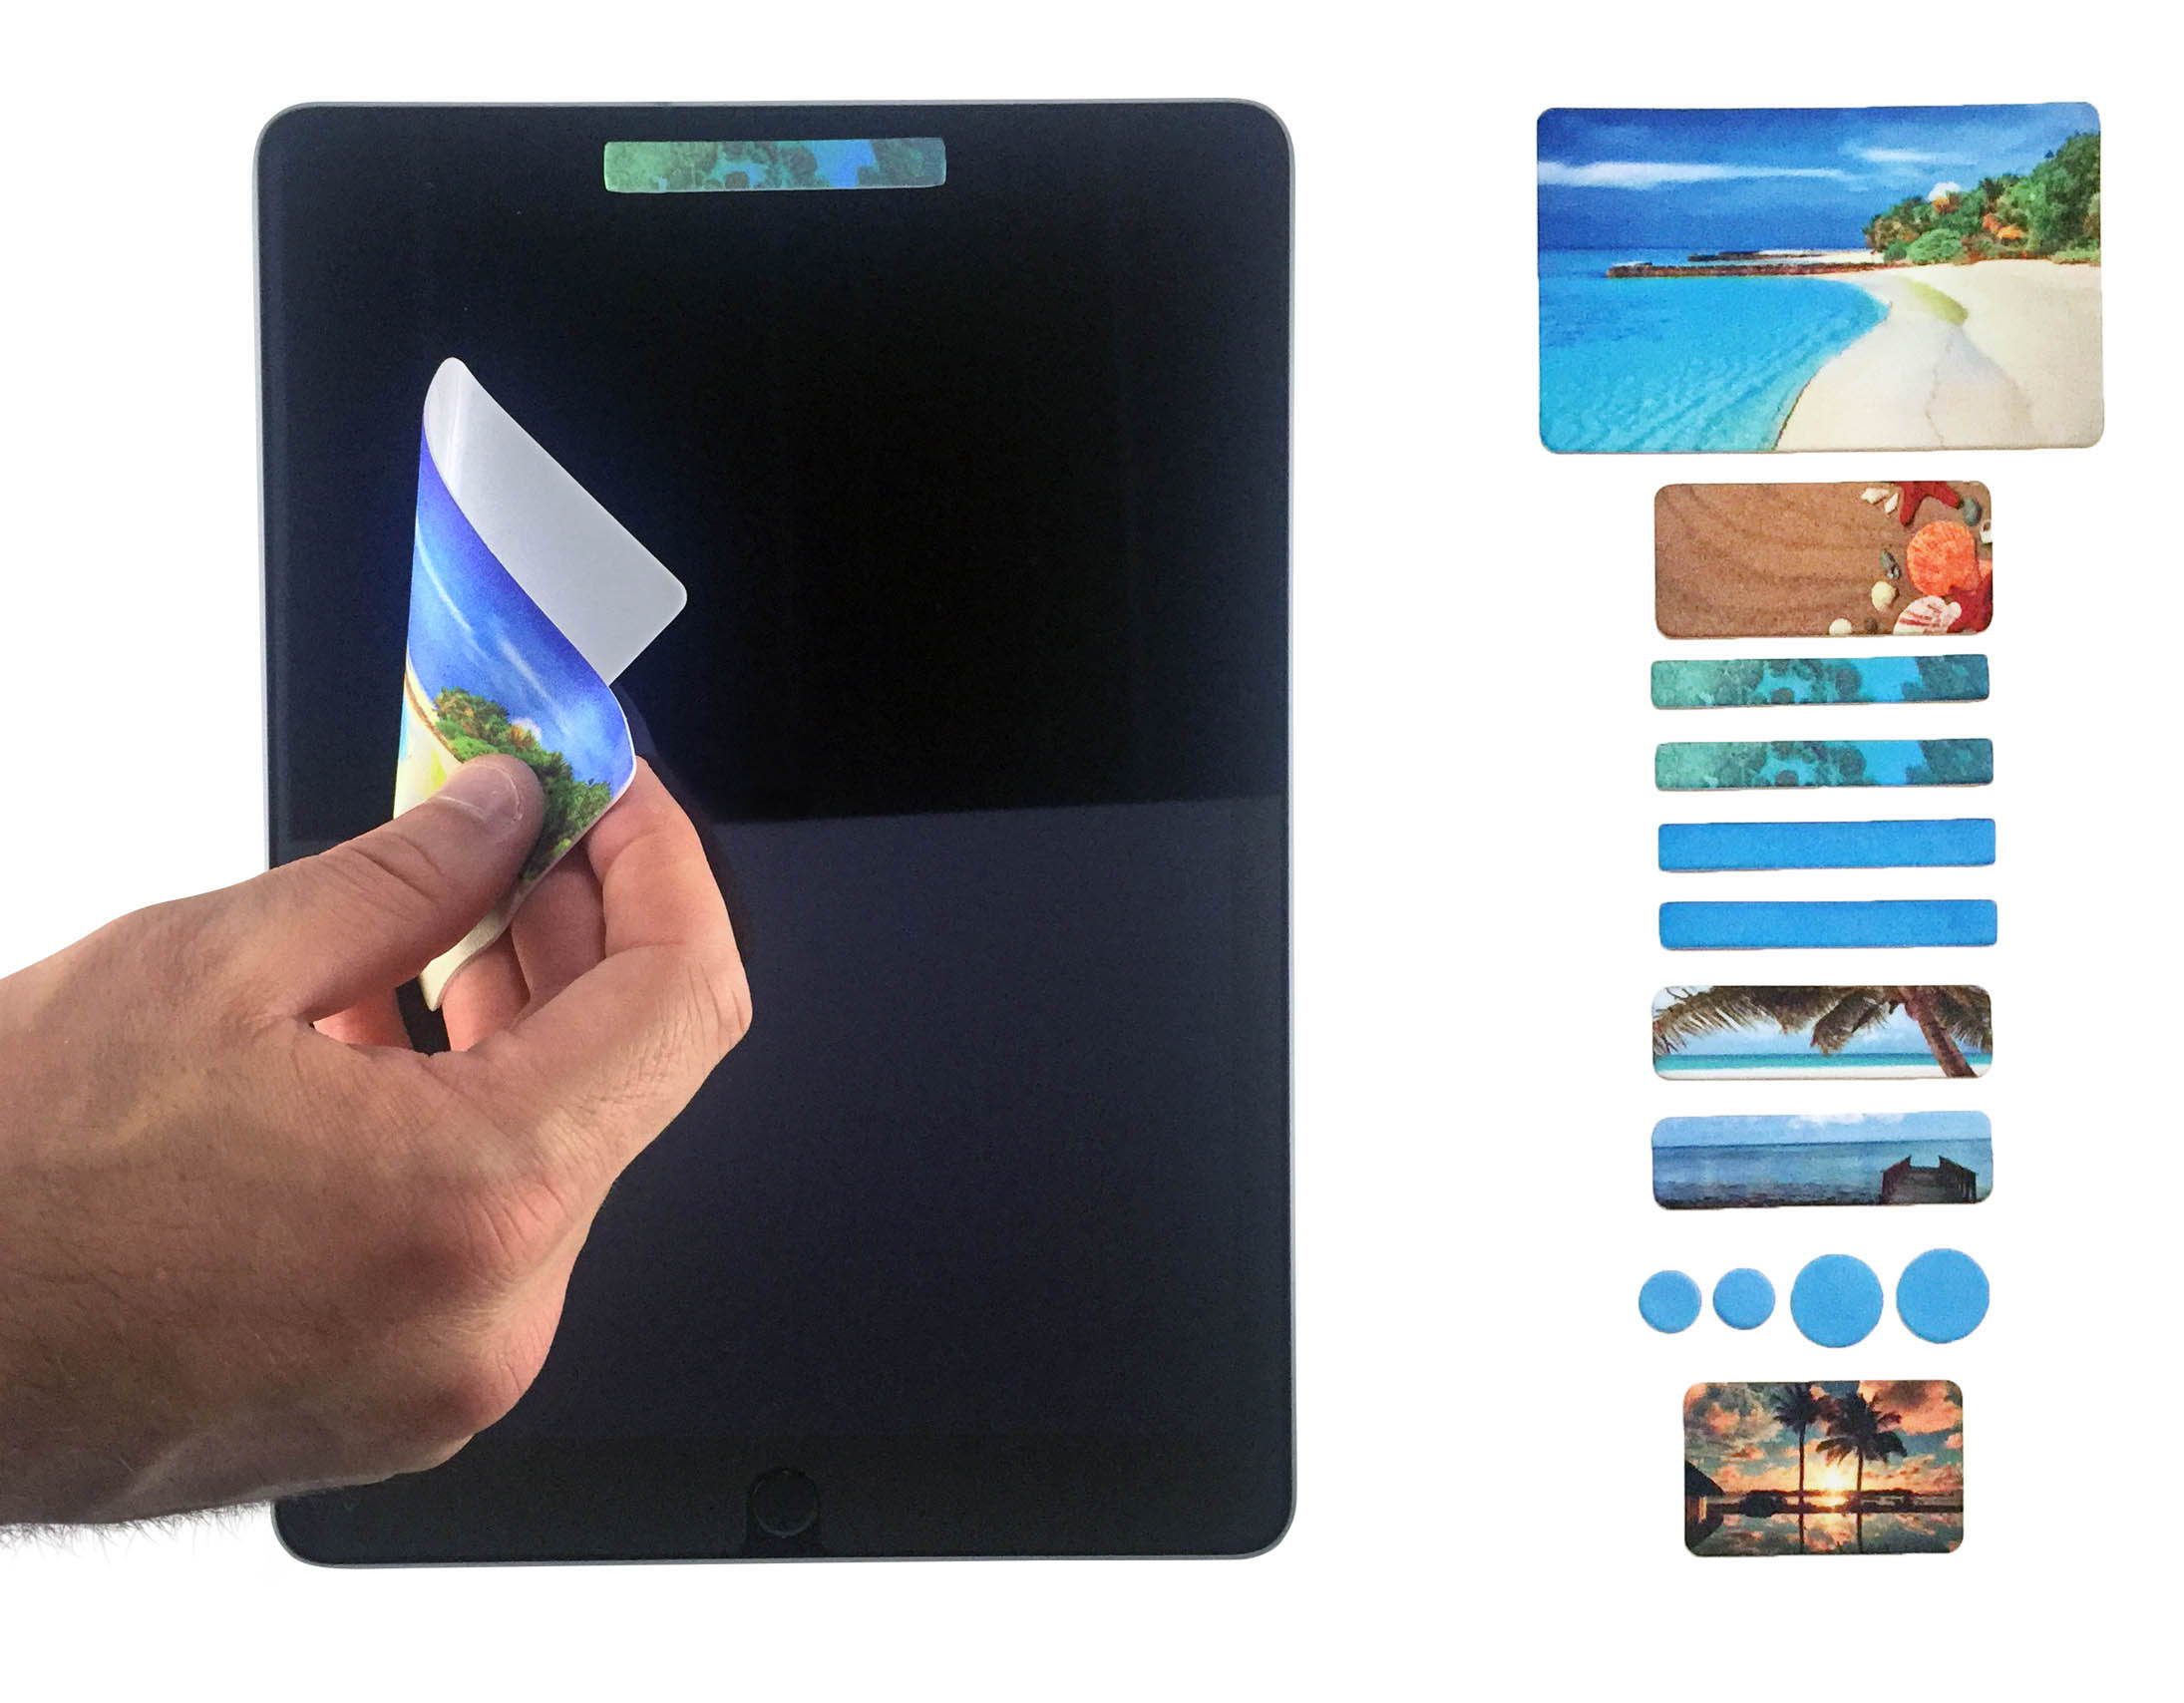 webcam cover on an ipad or tablet includes 12 different sizes of webcam cover